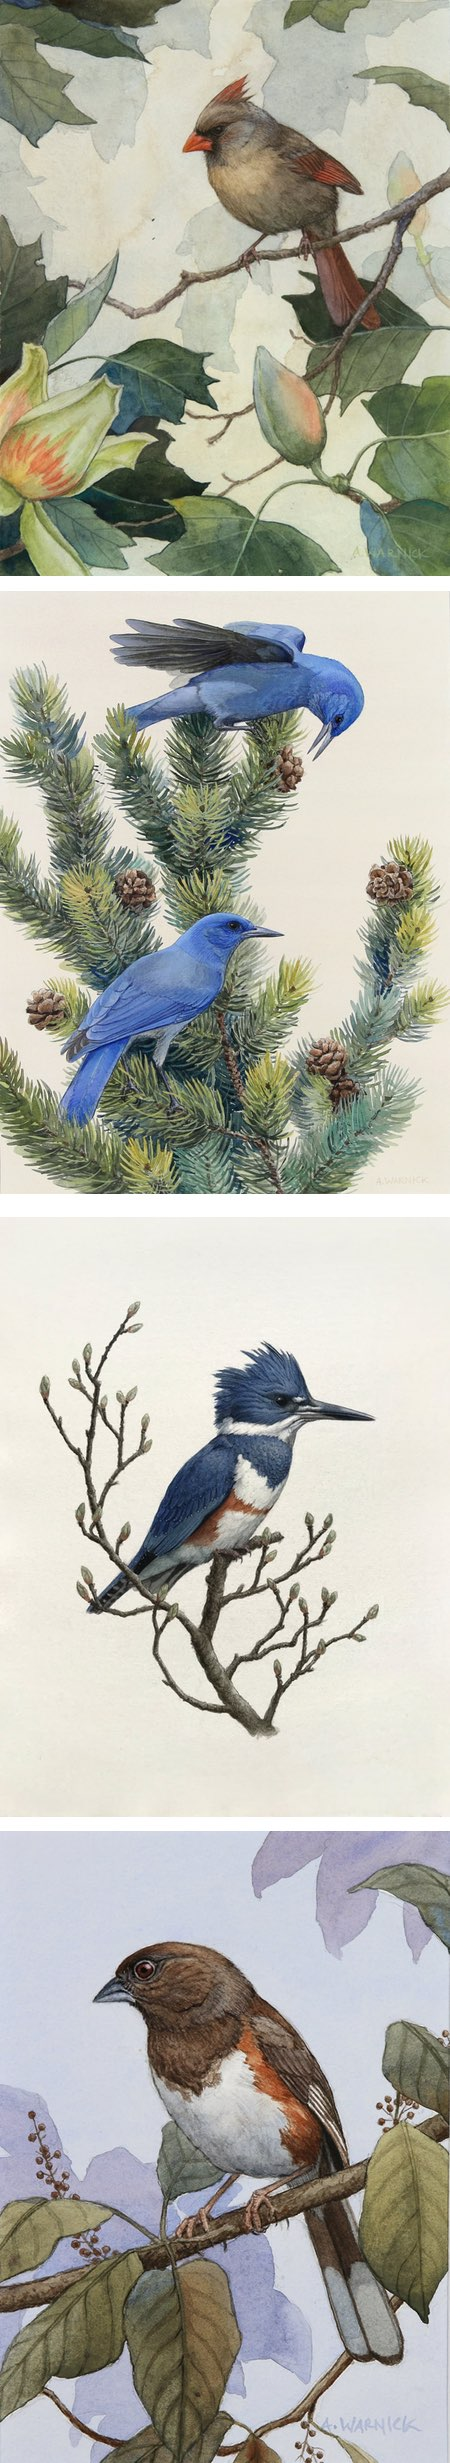 Alex Warnick, watercolor paintings of birds